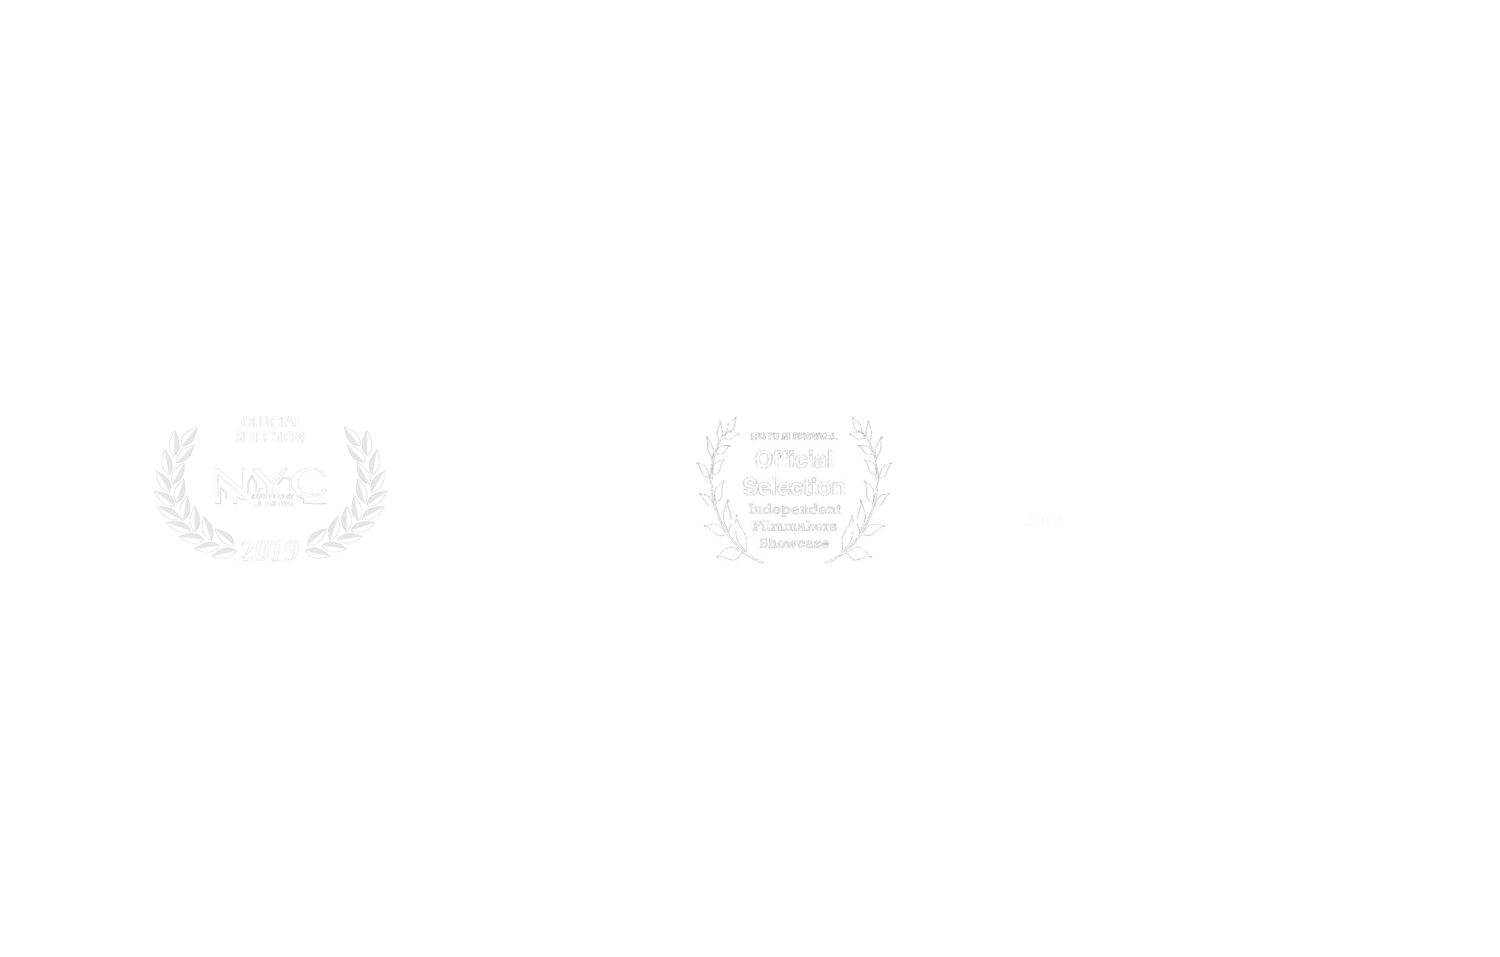 Exposure: a short film -  directed by J.D. Funari - written by Peter Hanson